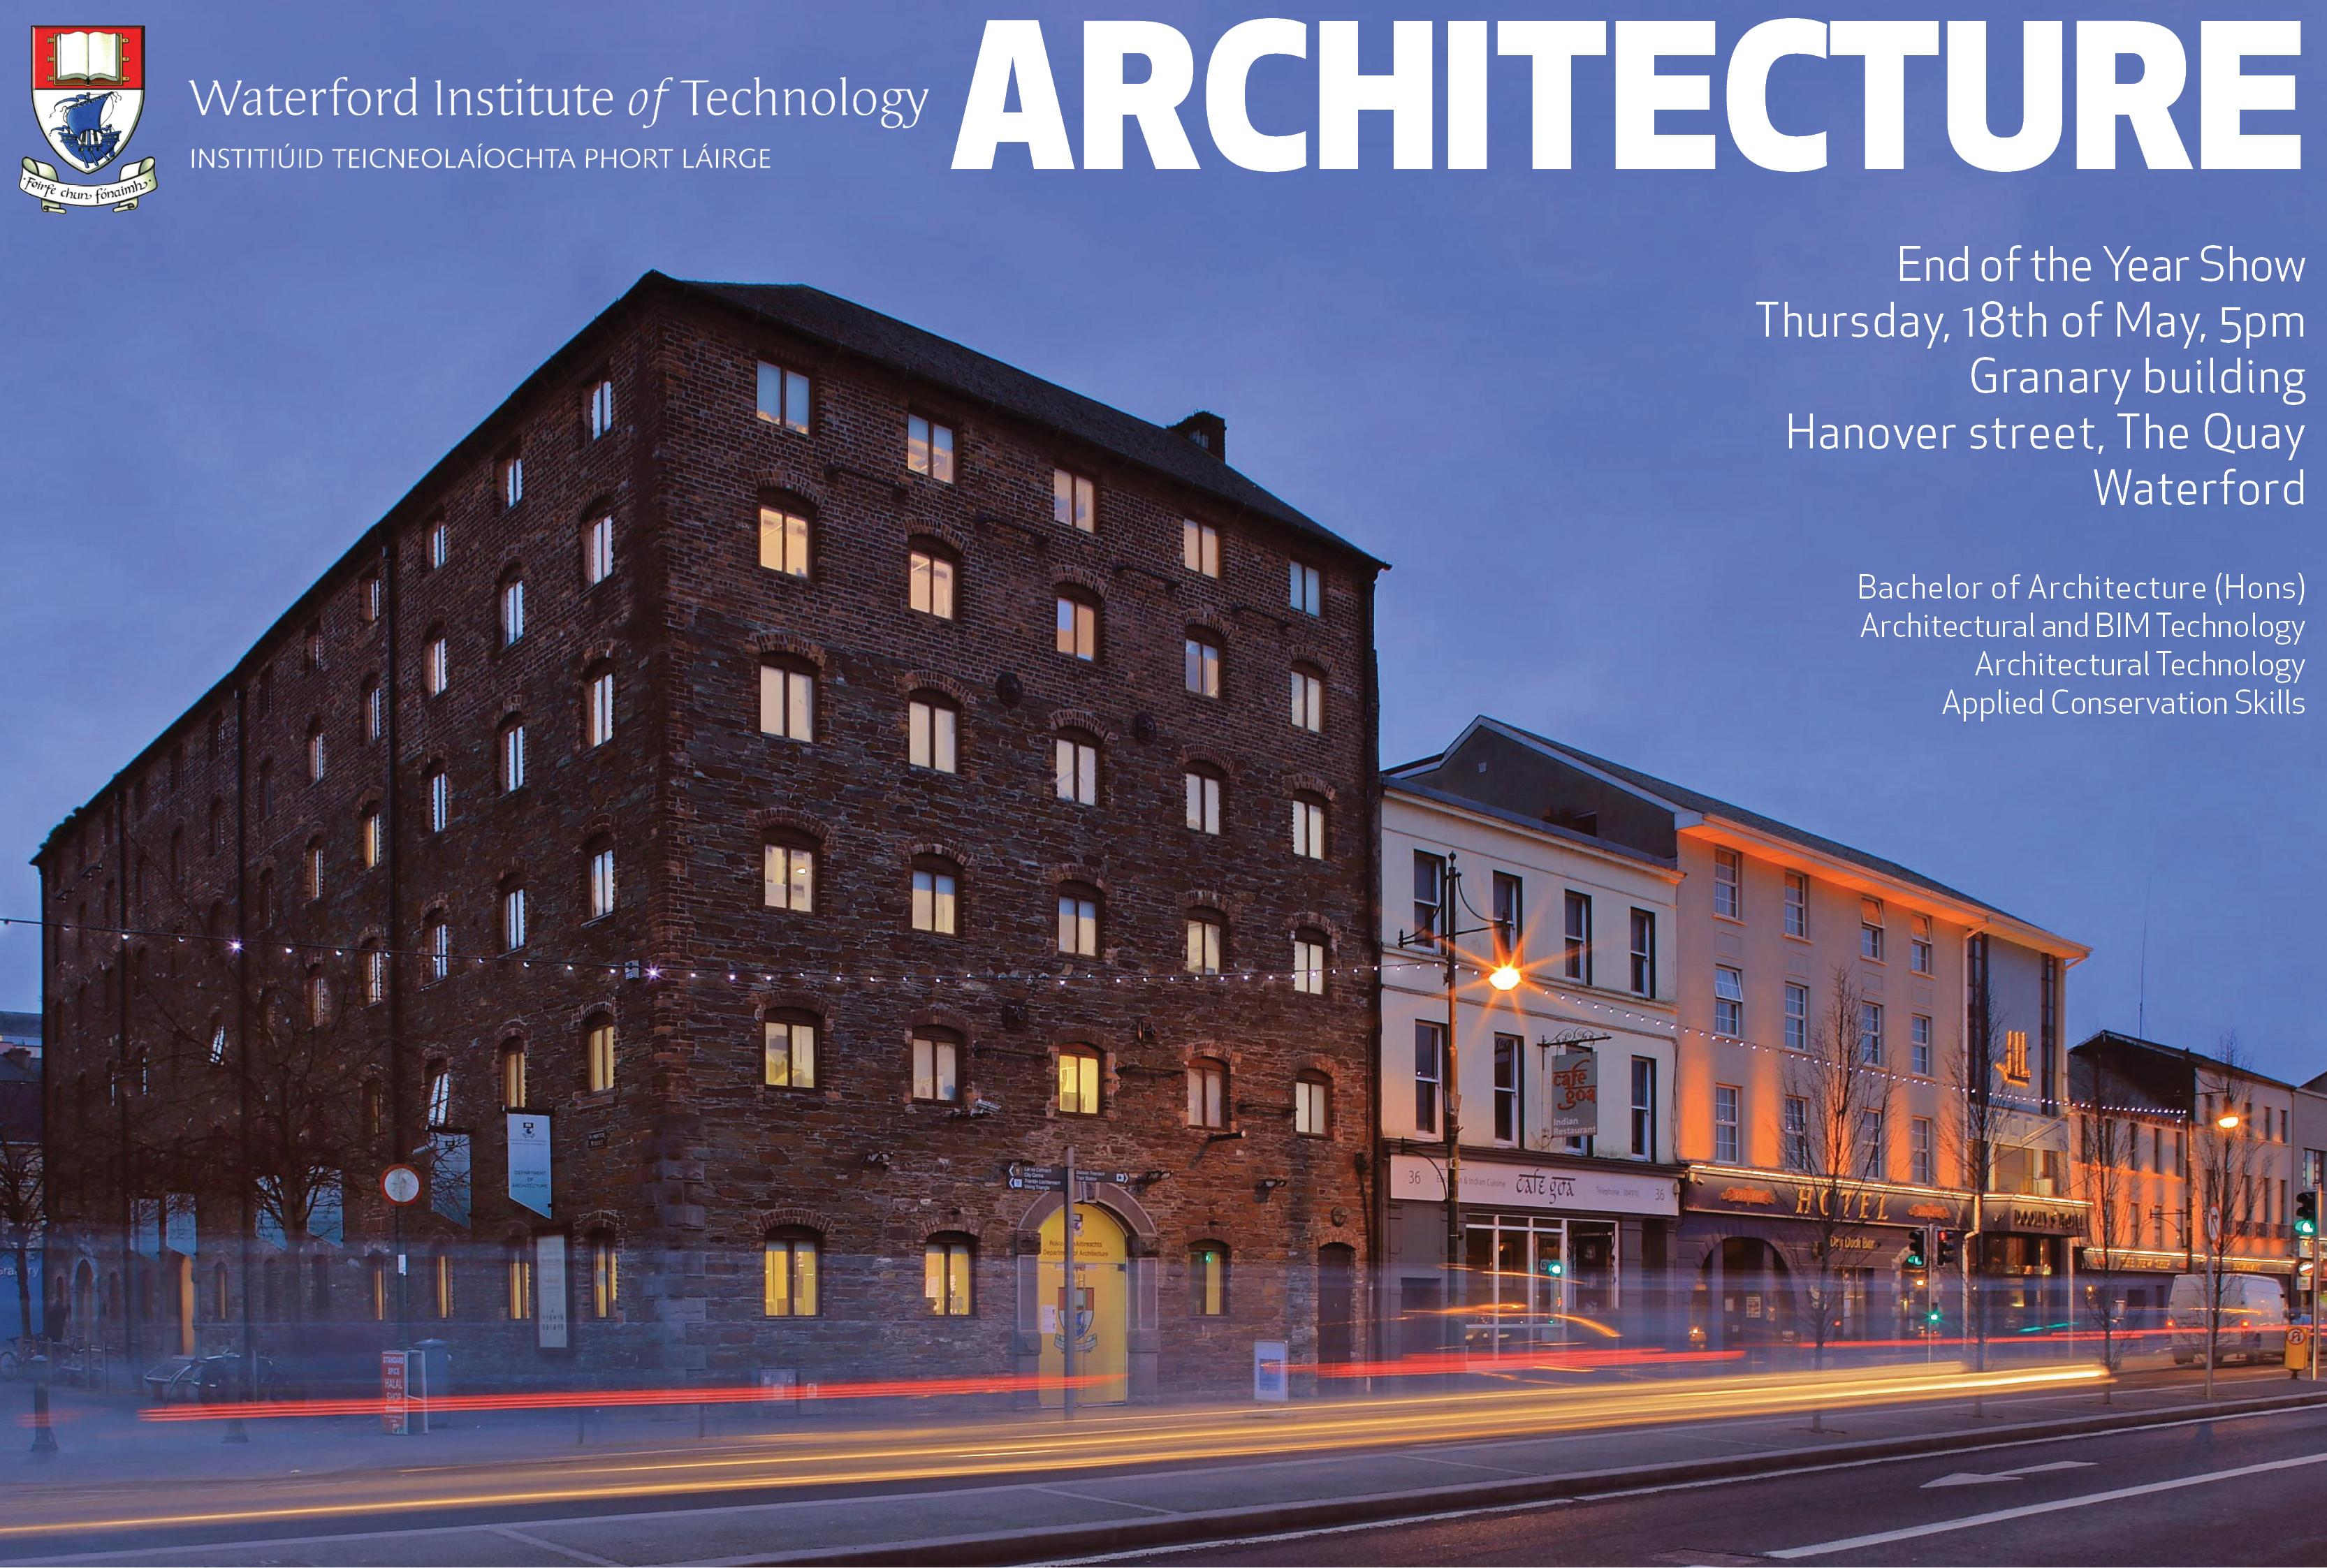 Architecture End of Year Show 2017